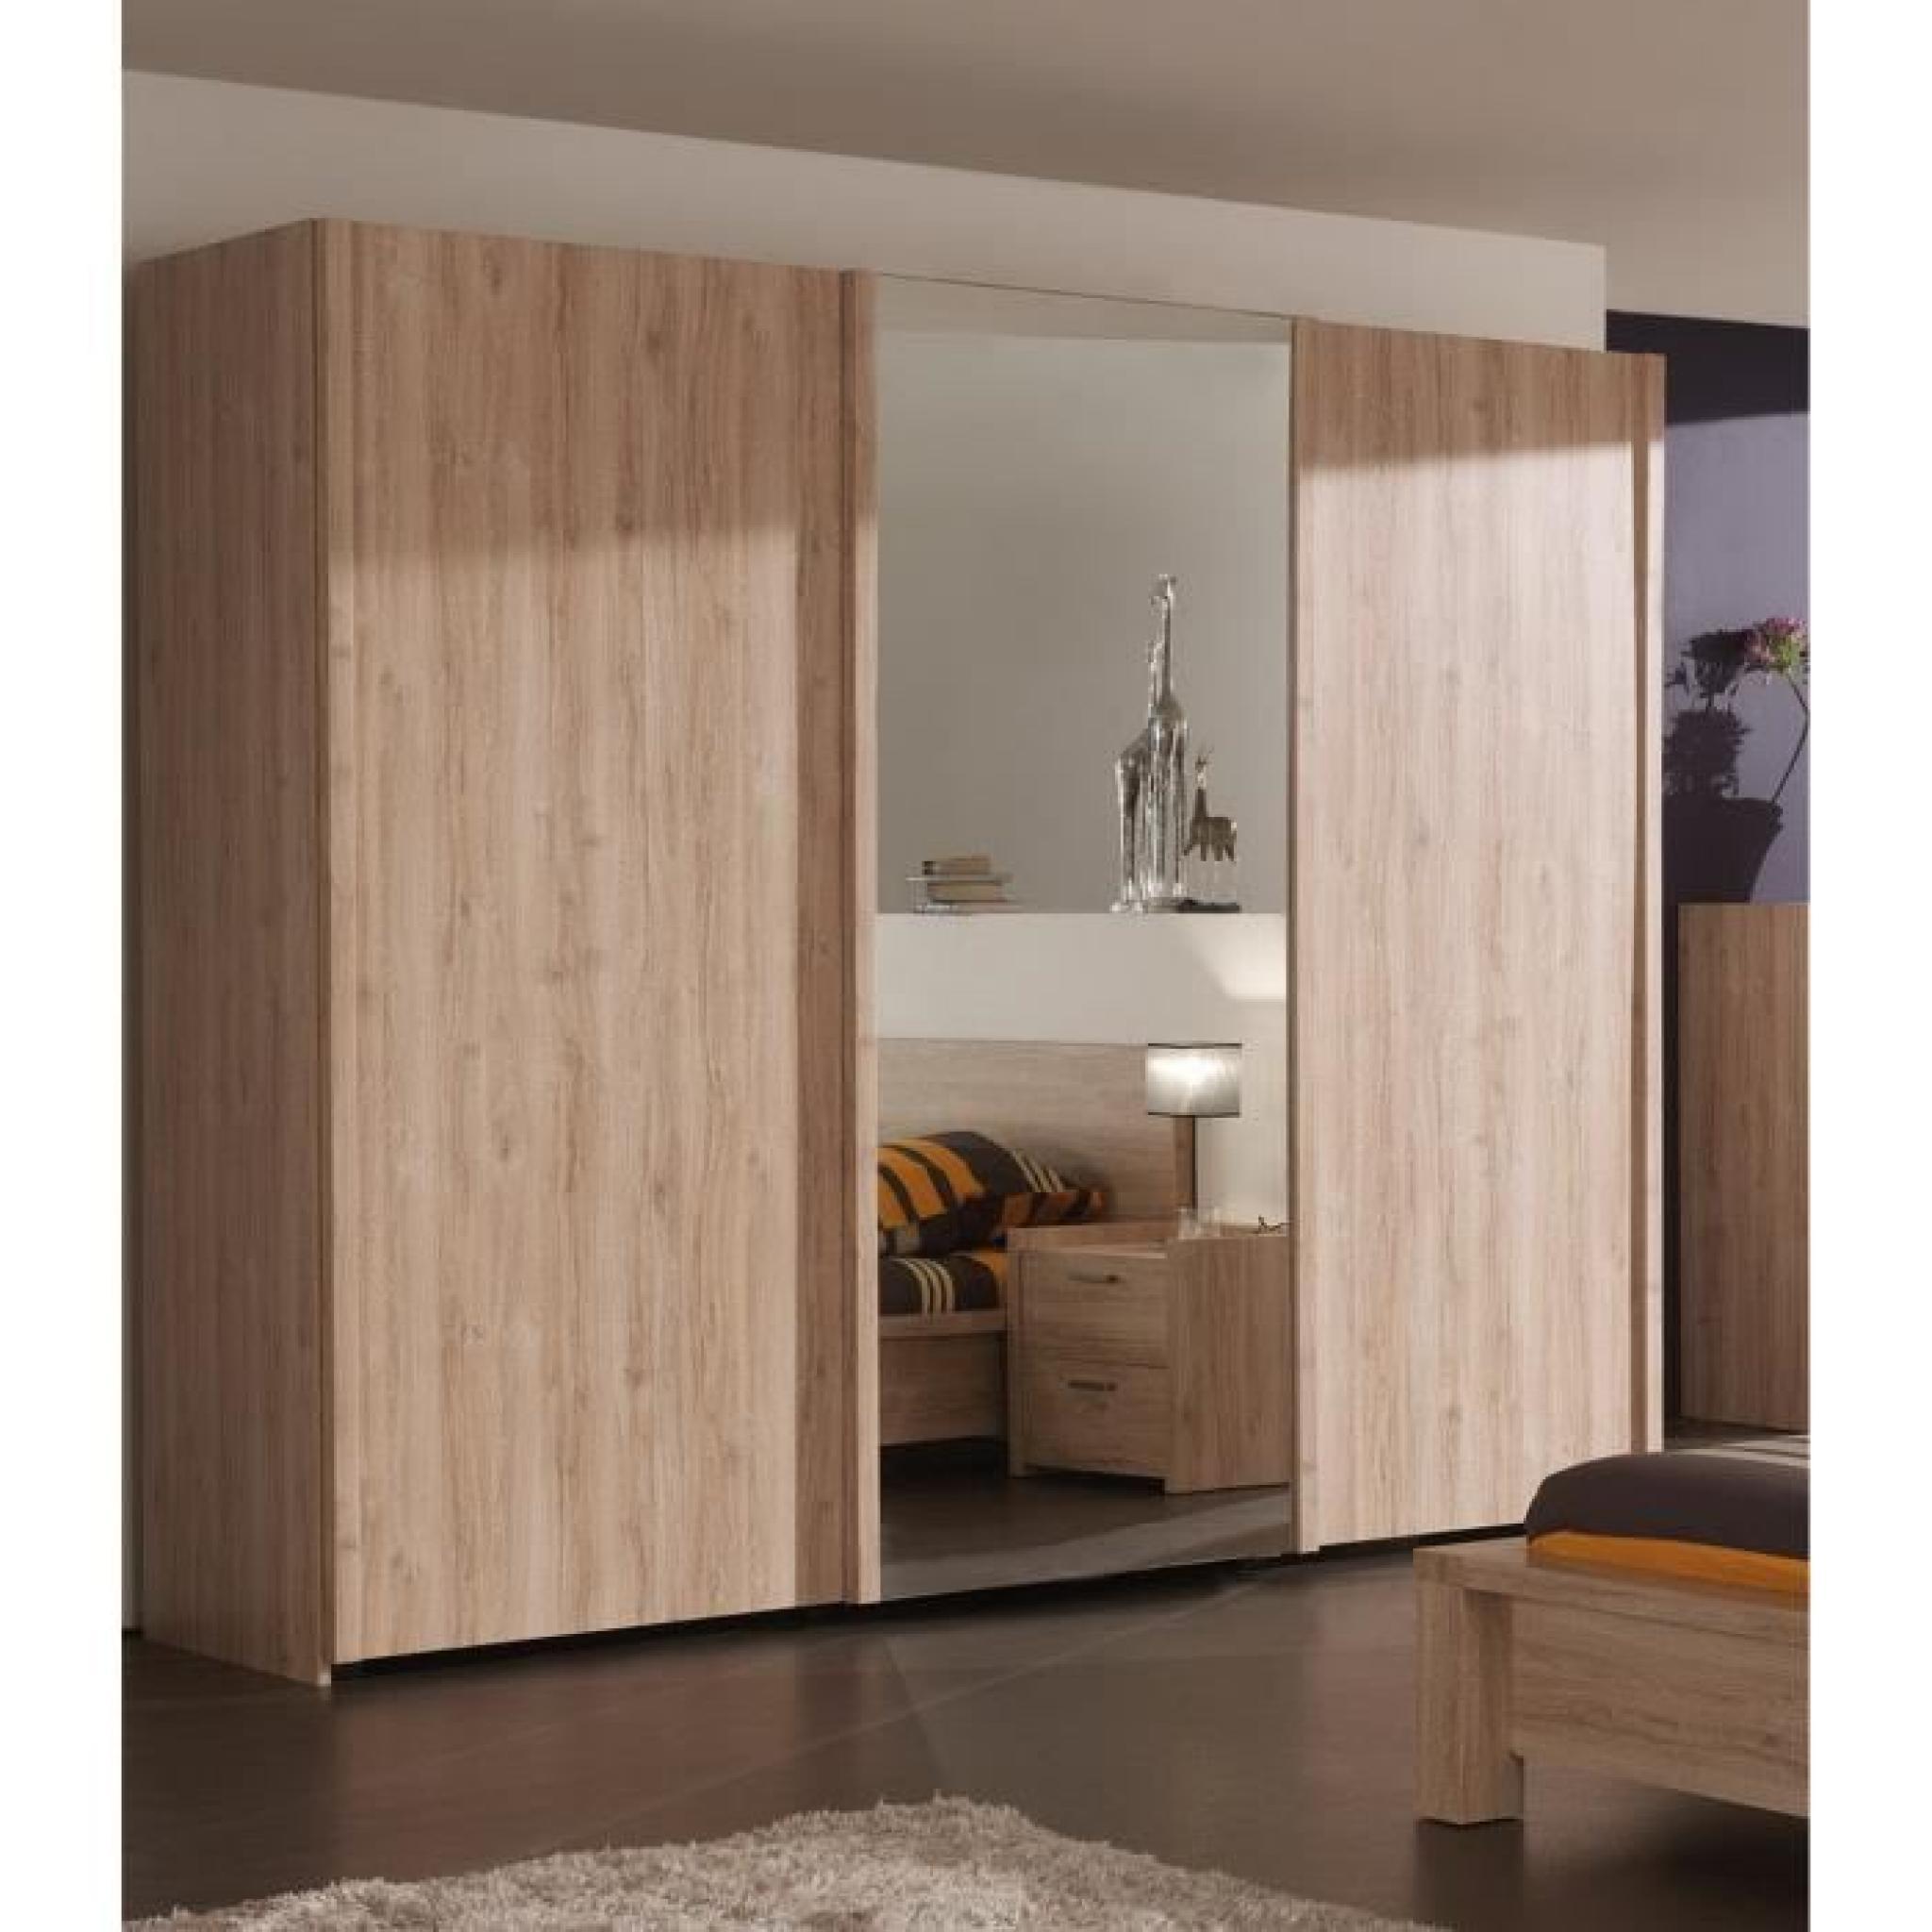 armoire chambre avec miroir pas cher 182021. Black Bedroom Furniture Sets. Home Design Ideas